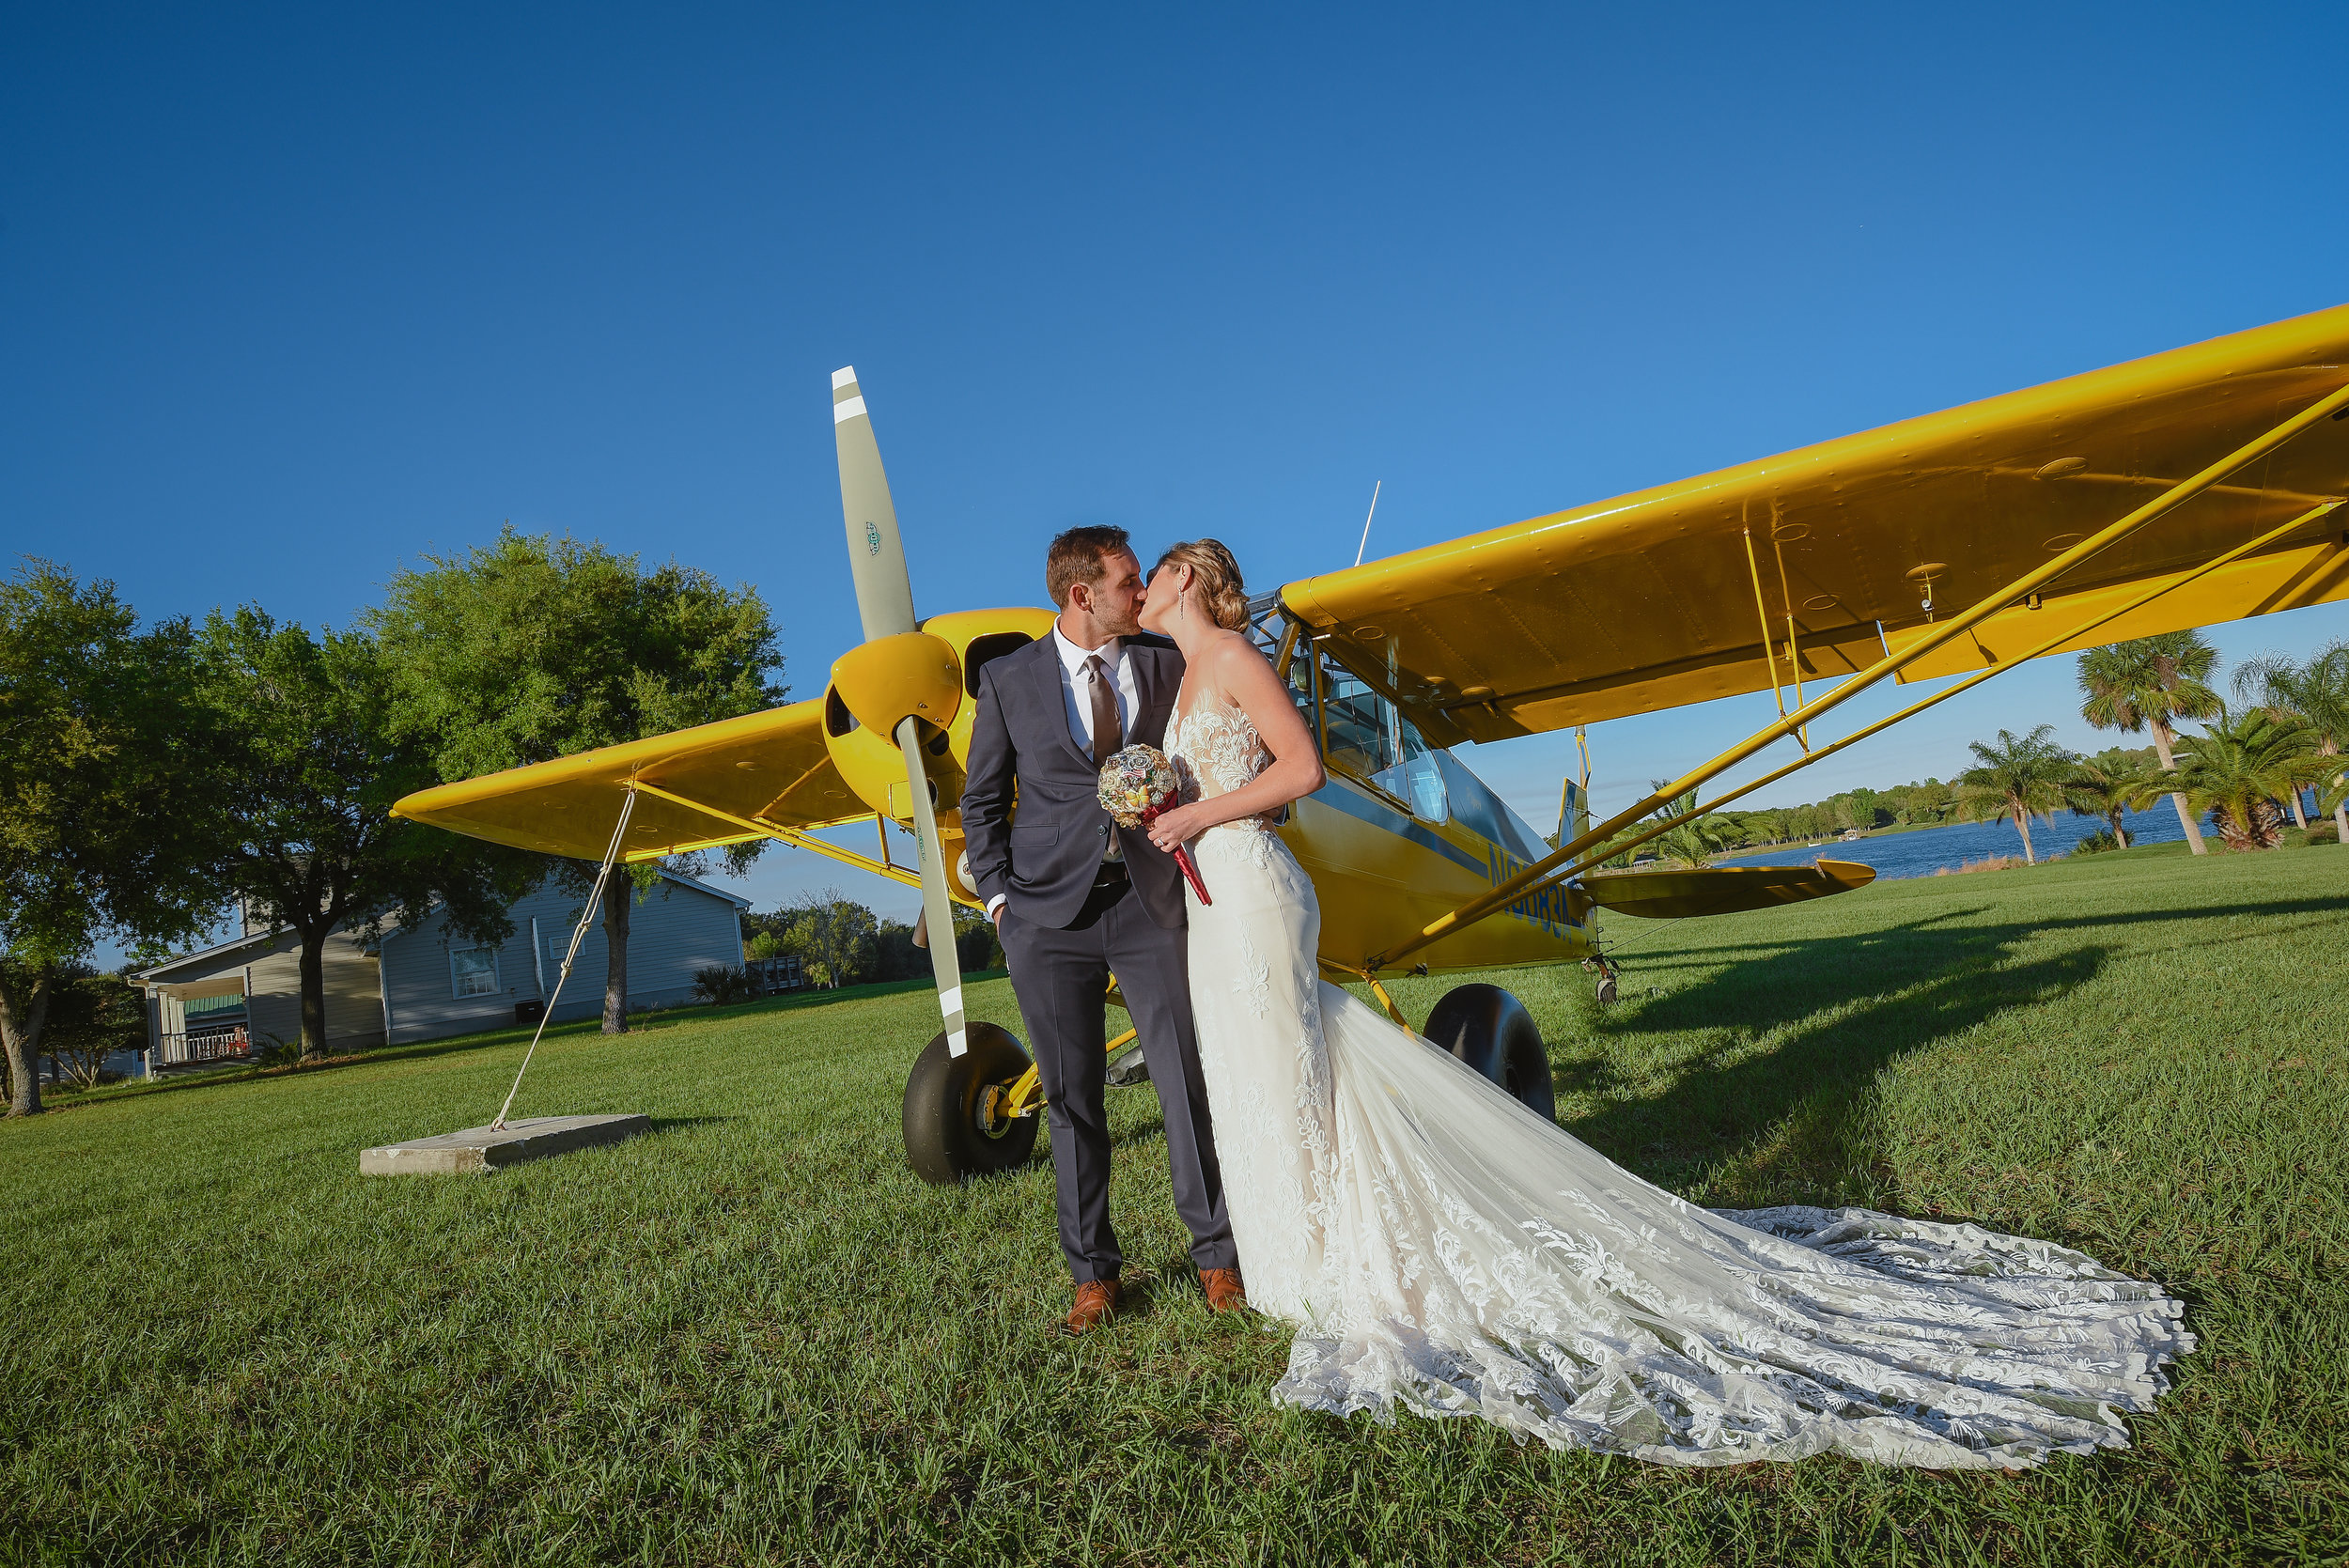 Wedding just outside of Orlando at a private airplane hangar